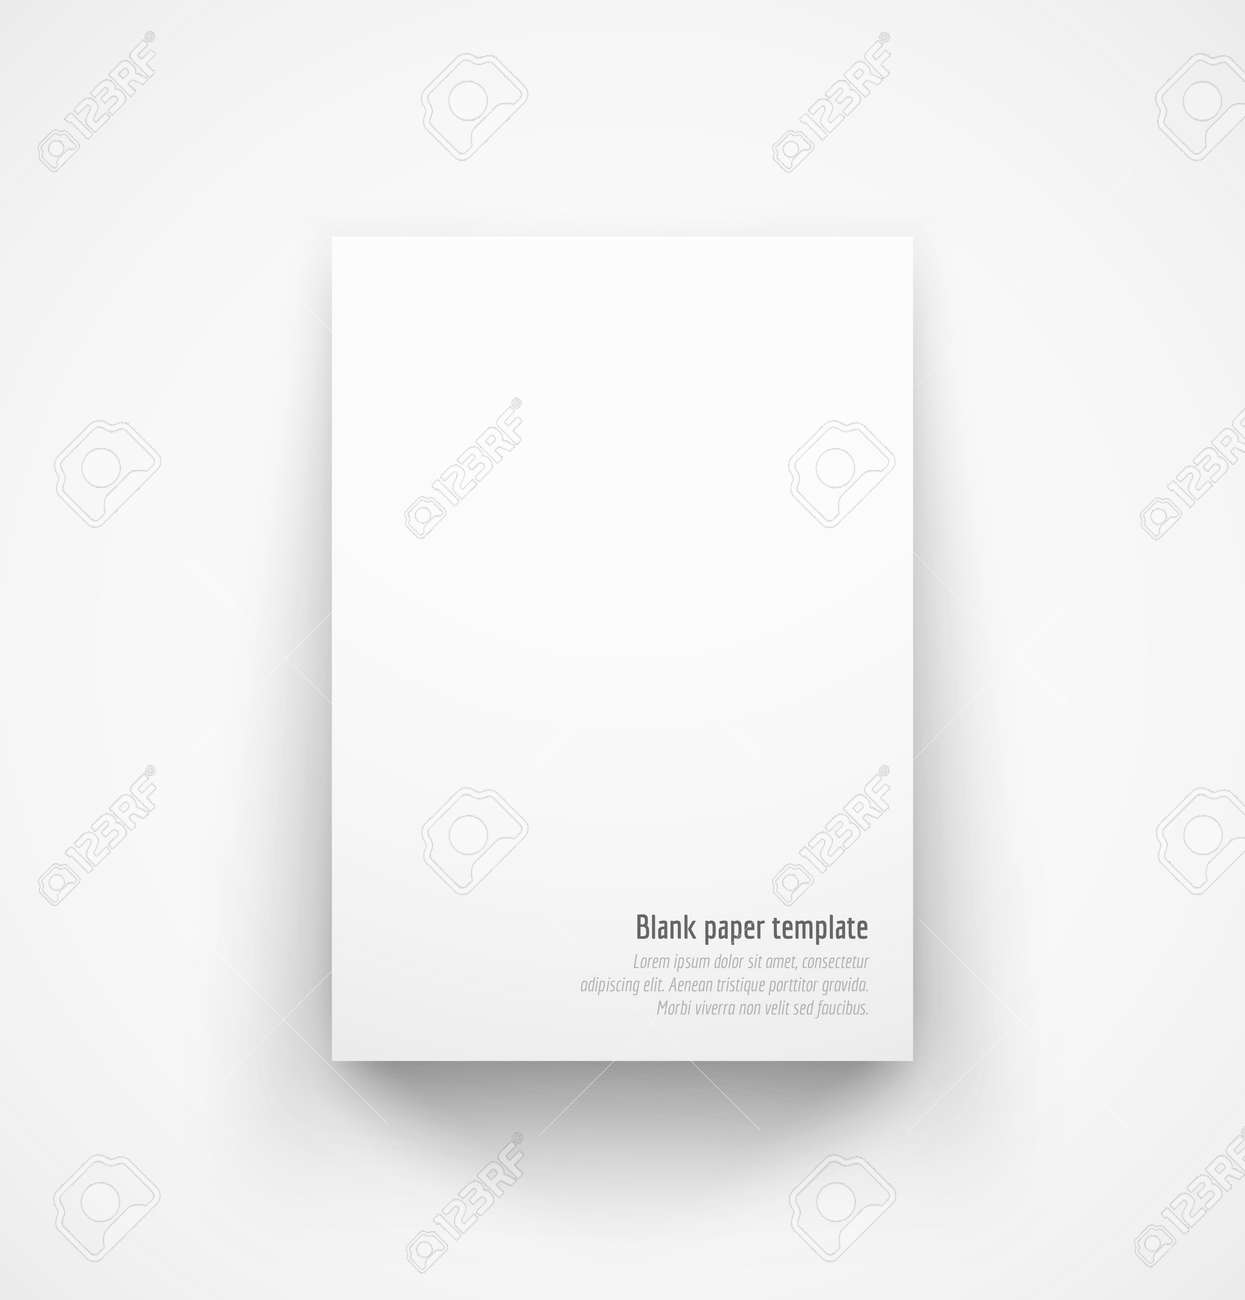 White Paper Template Mockup With Drop Shadow Vector Illustration – Free White Paper Template